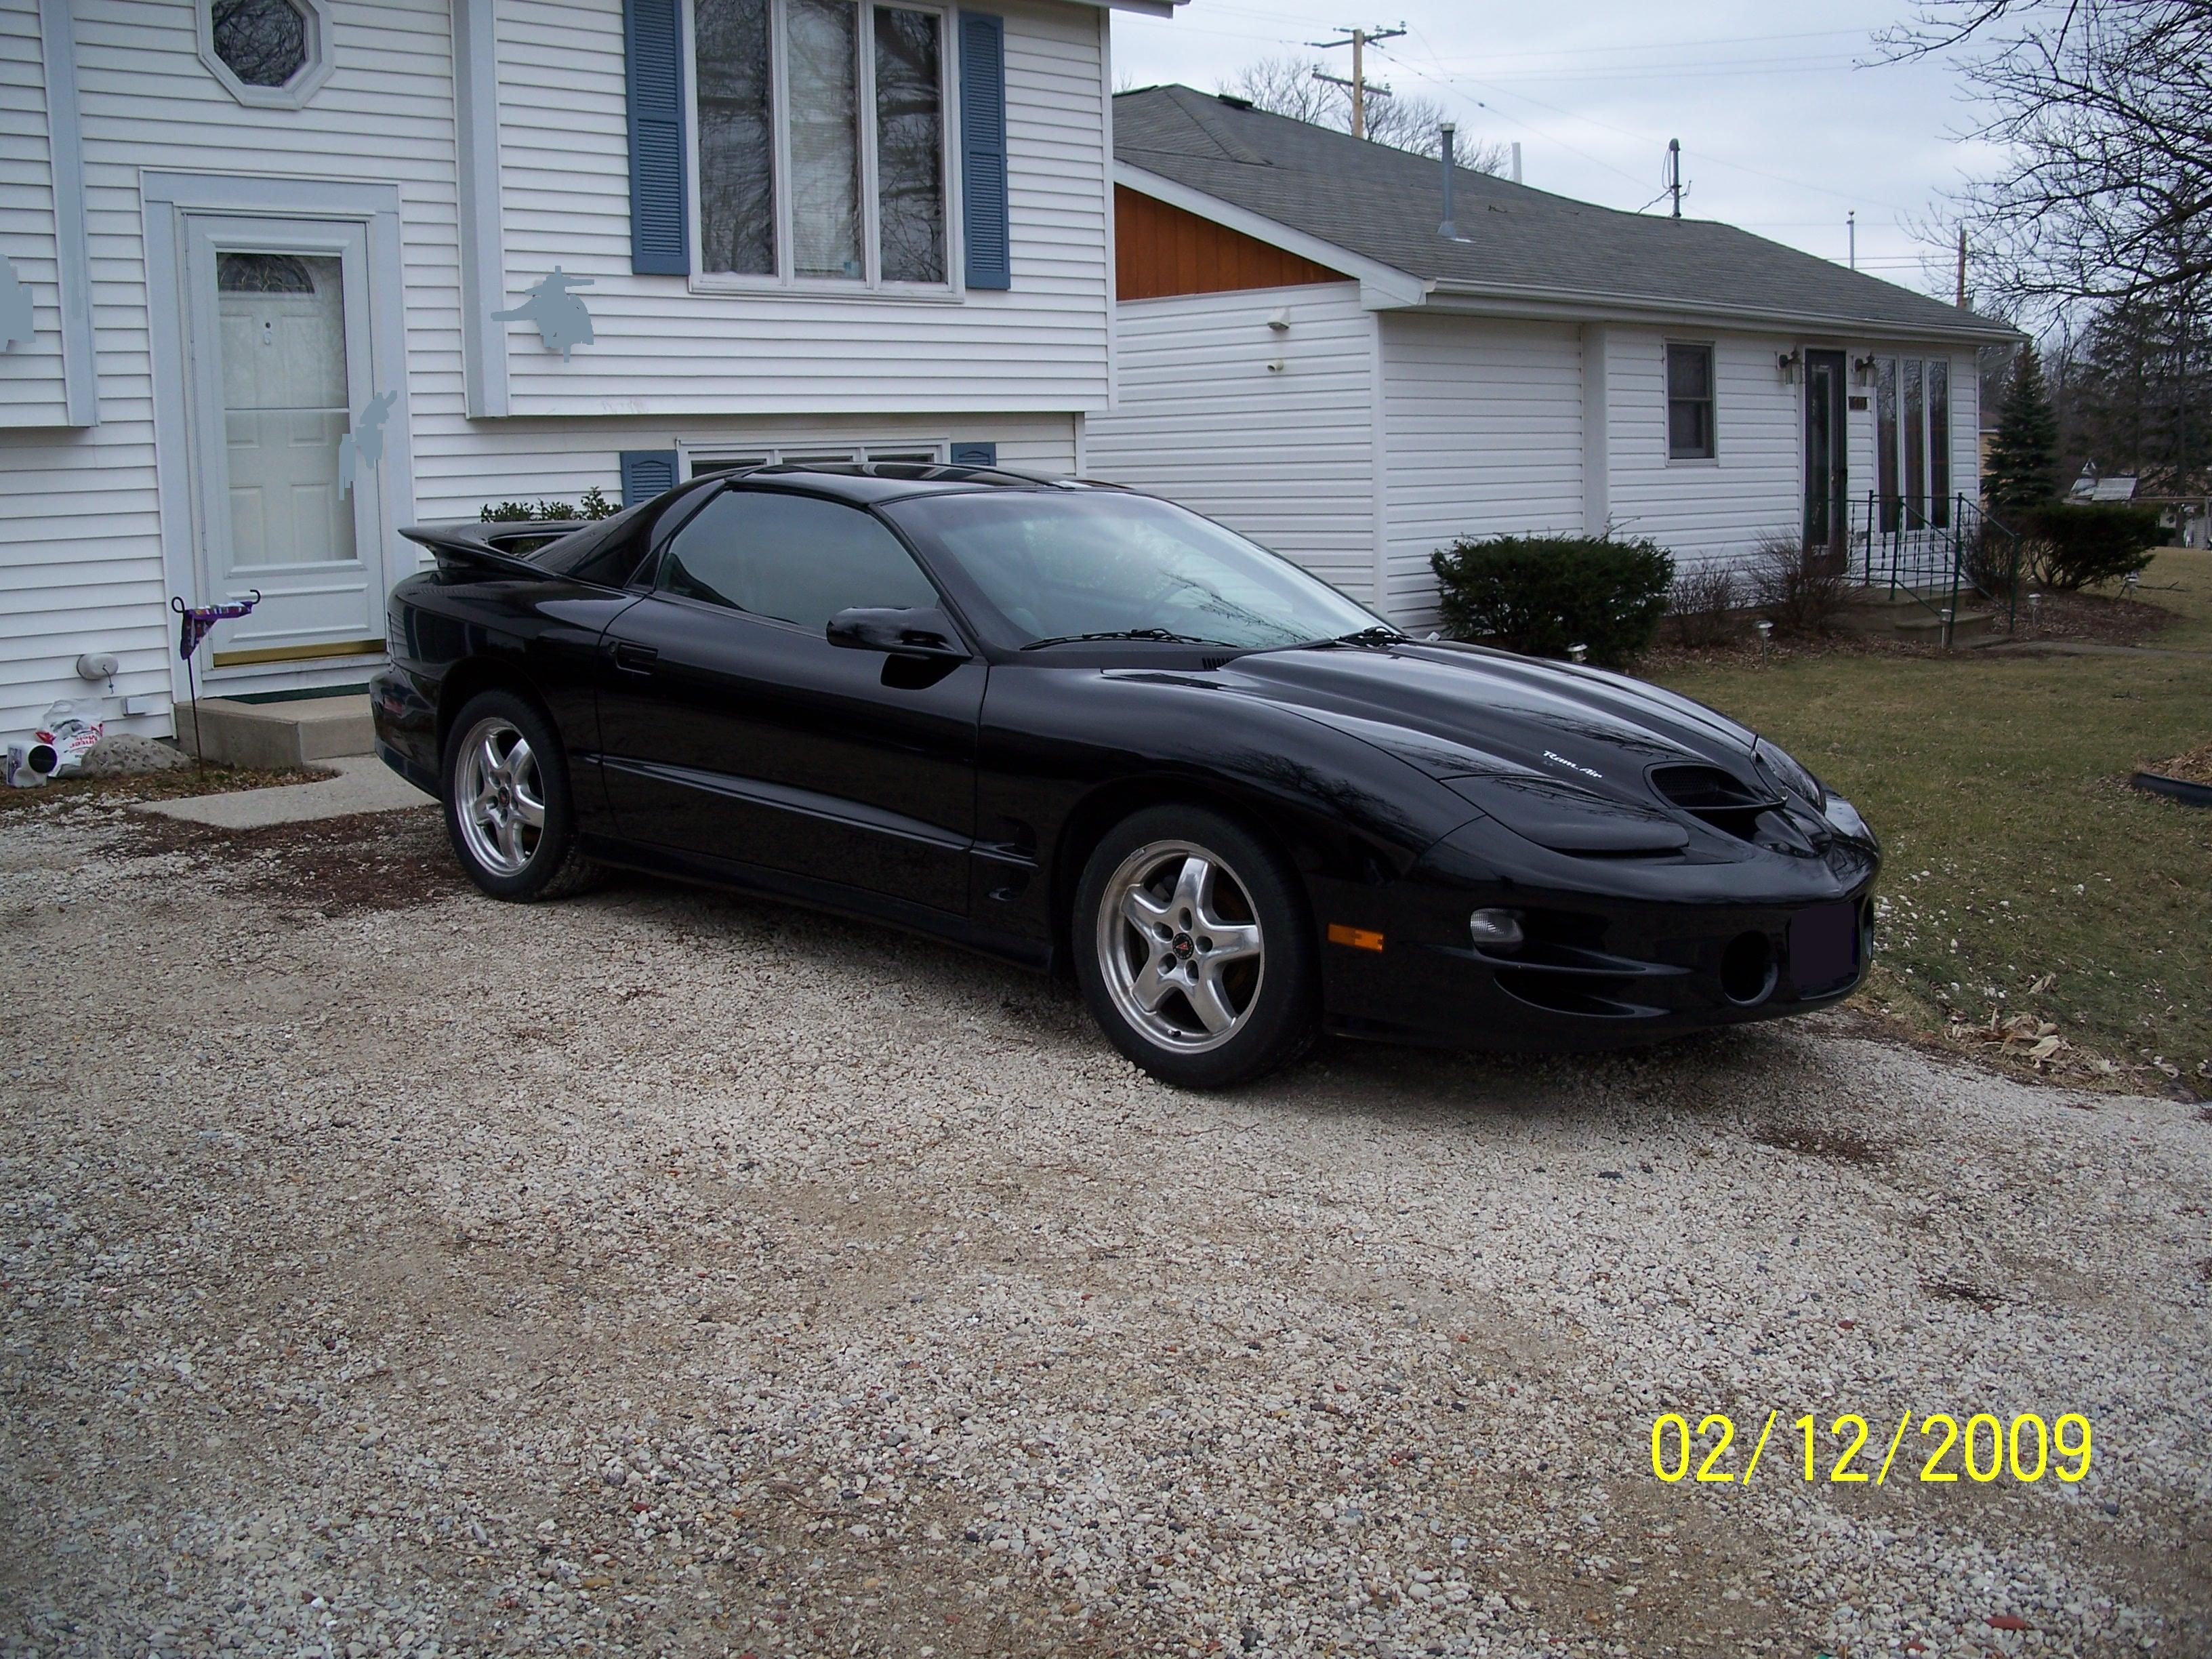 hellinamercury 39 s 2002 pontiac trans am page 2 in salem wi. Black Bedroom Furniture Sets. Home Design Ideas